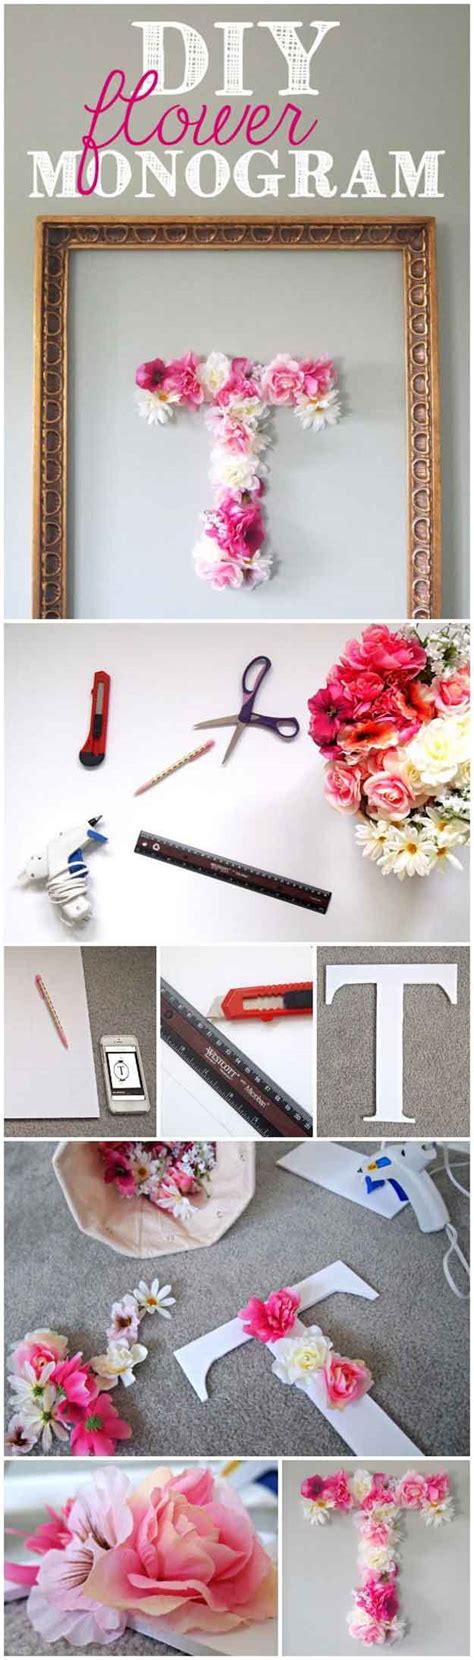 crafts for bedroom diy projects for teens bedroom diy ready